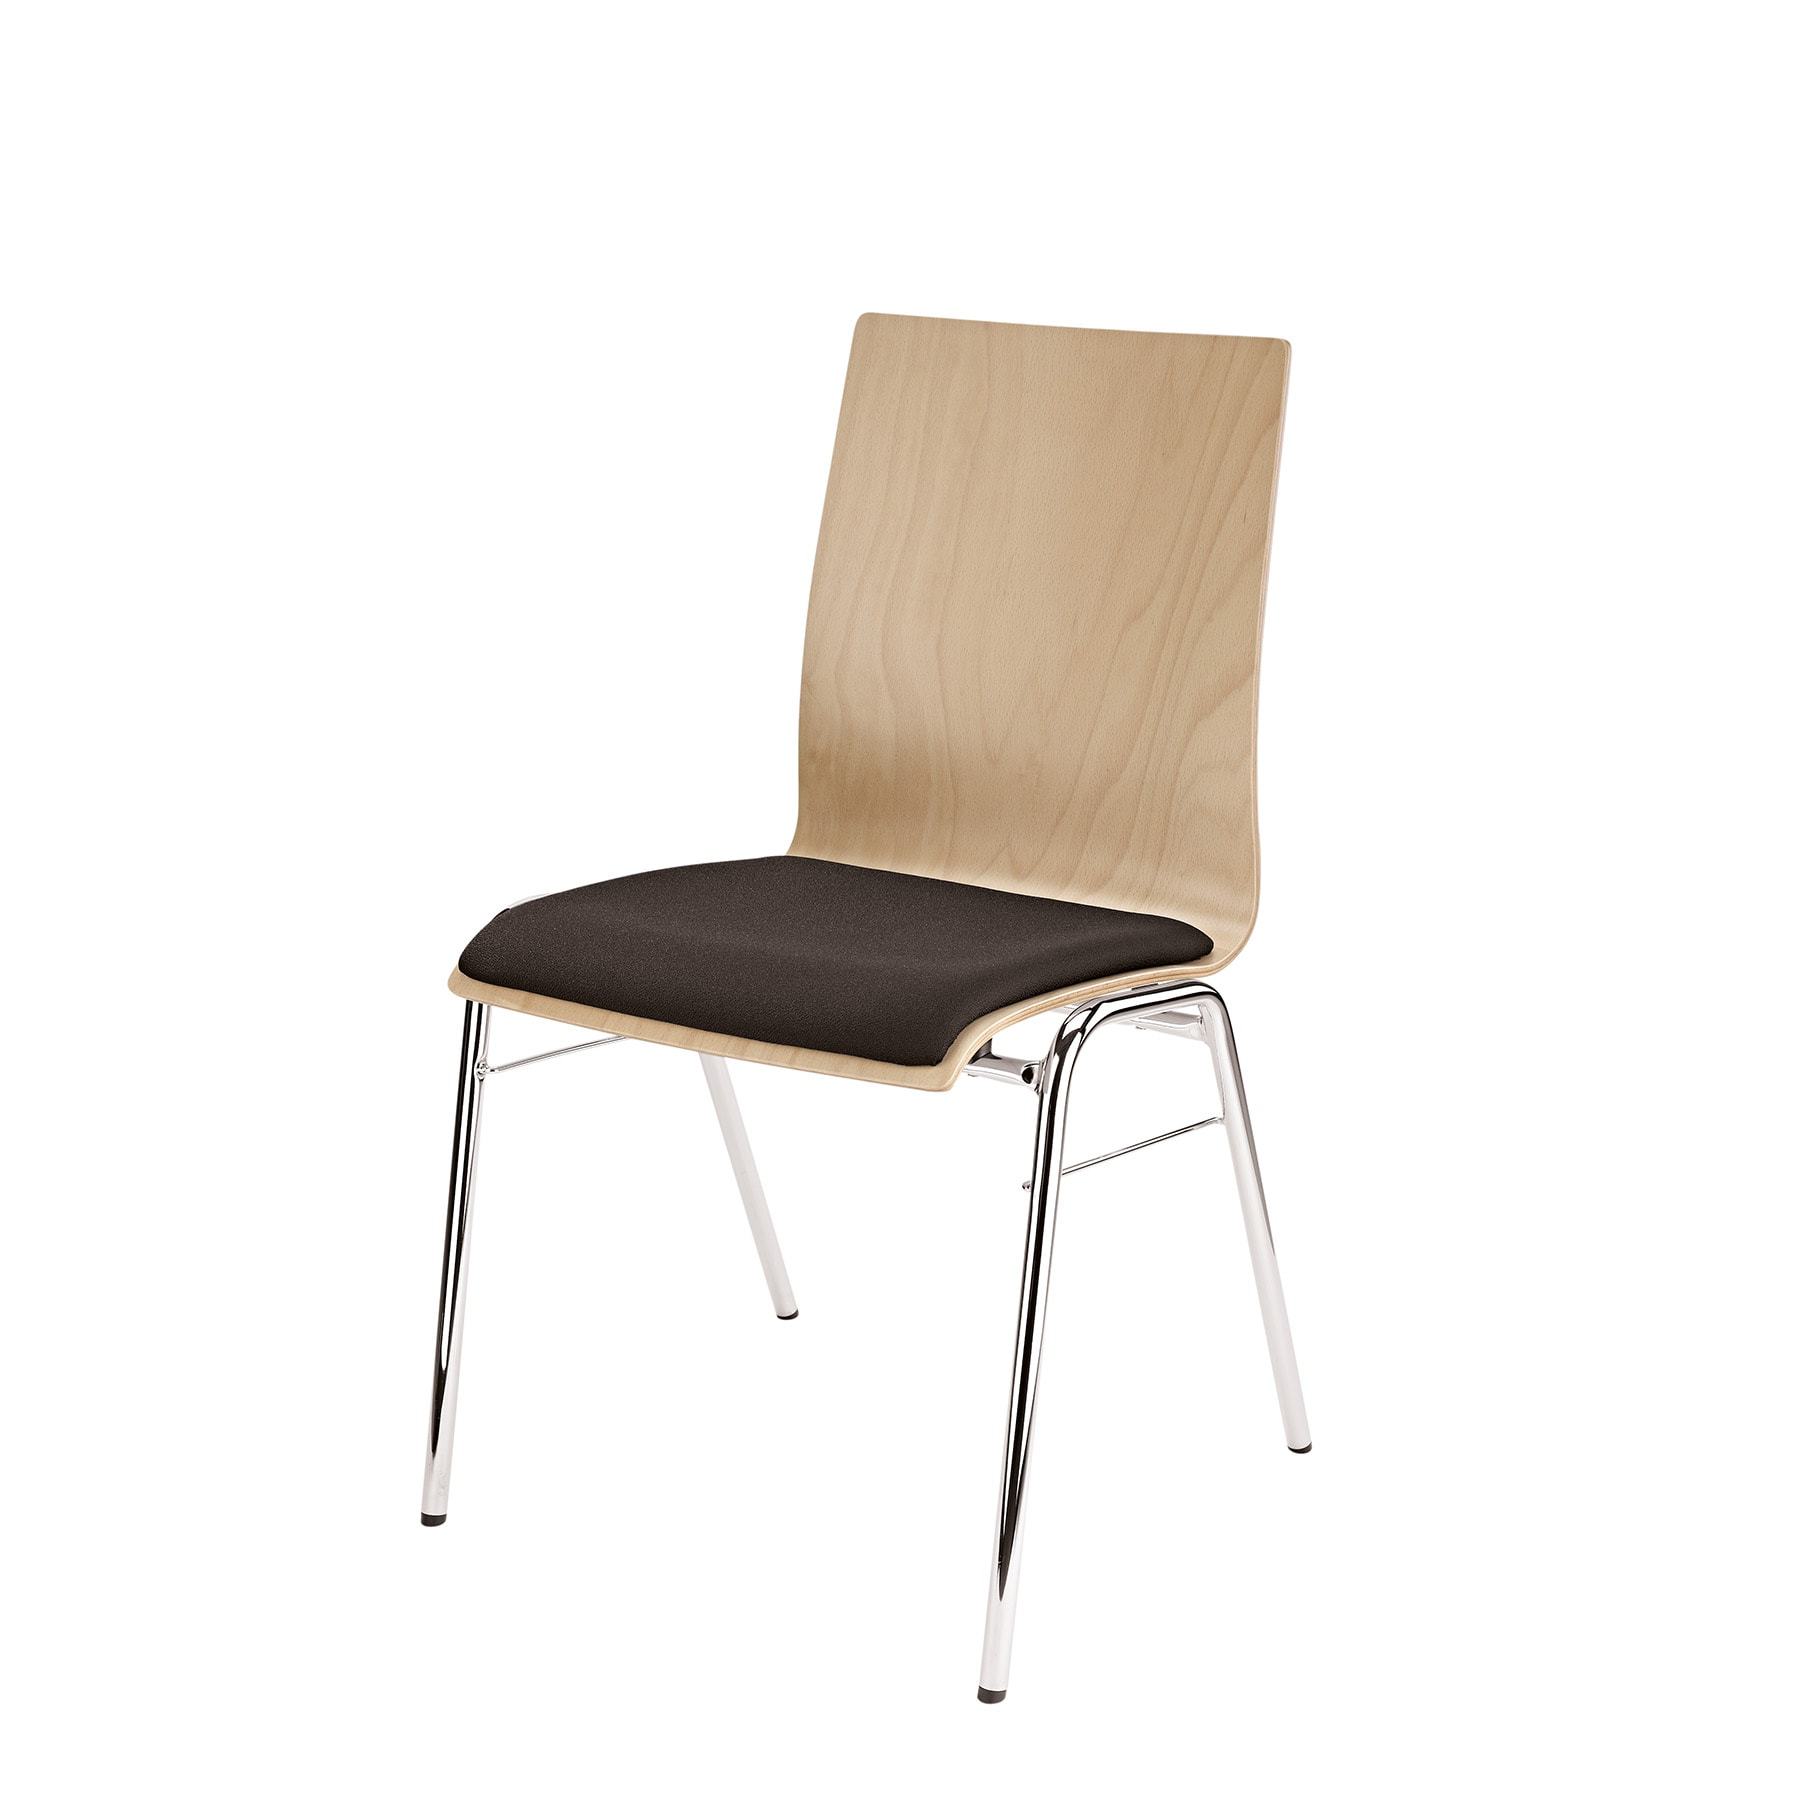 KM13410 - Stacking chair